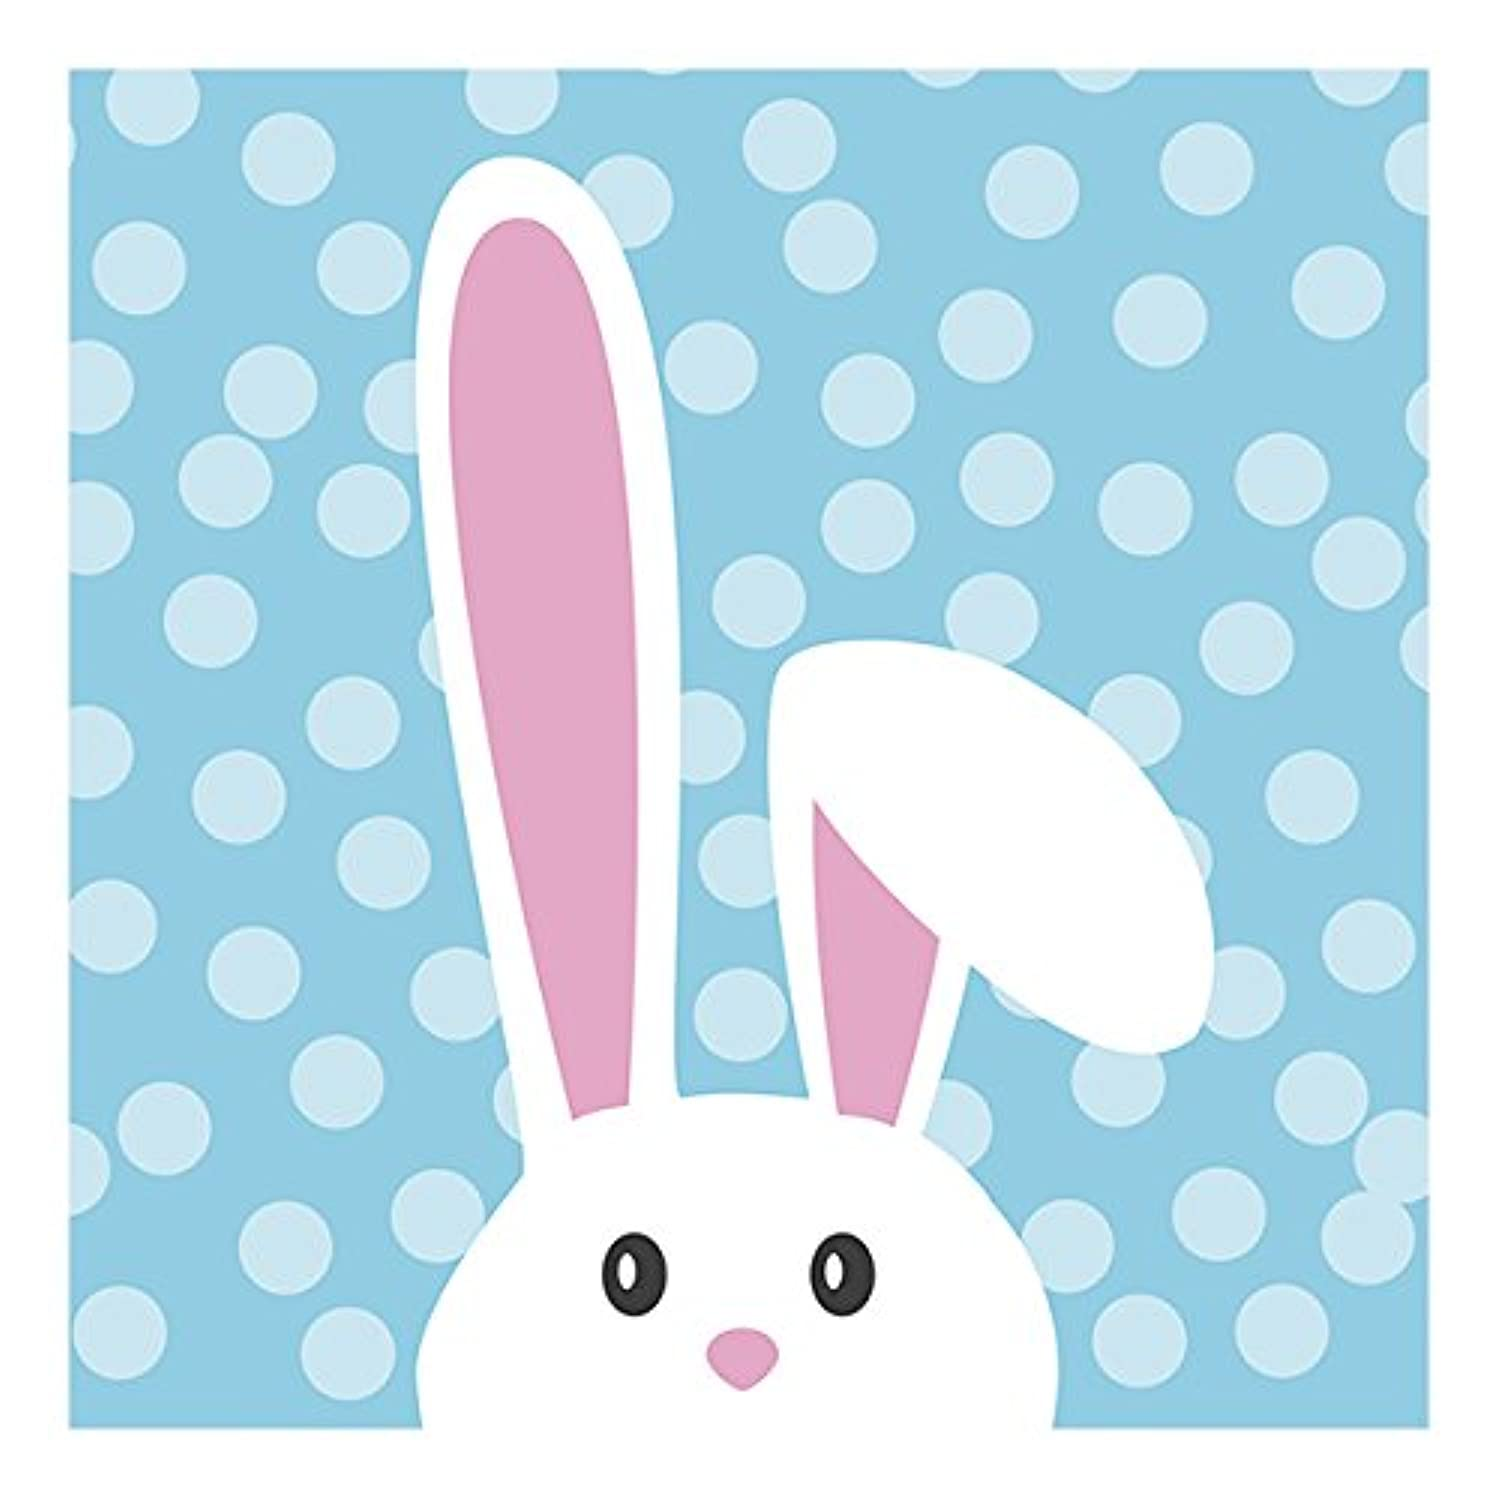 Graphique Pop Up Bunny Party Napkins - 20 Soft Triple-Ply Tissue Napkins With Adorable Bunny on Blue Polka Dots, 5